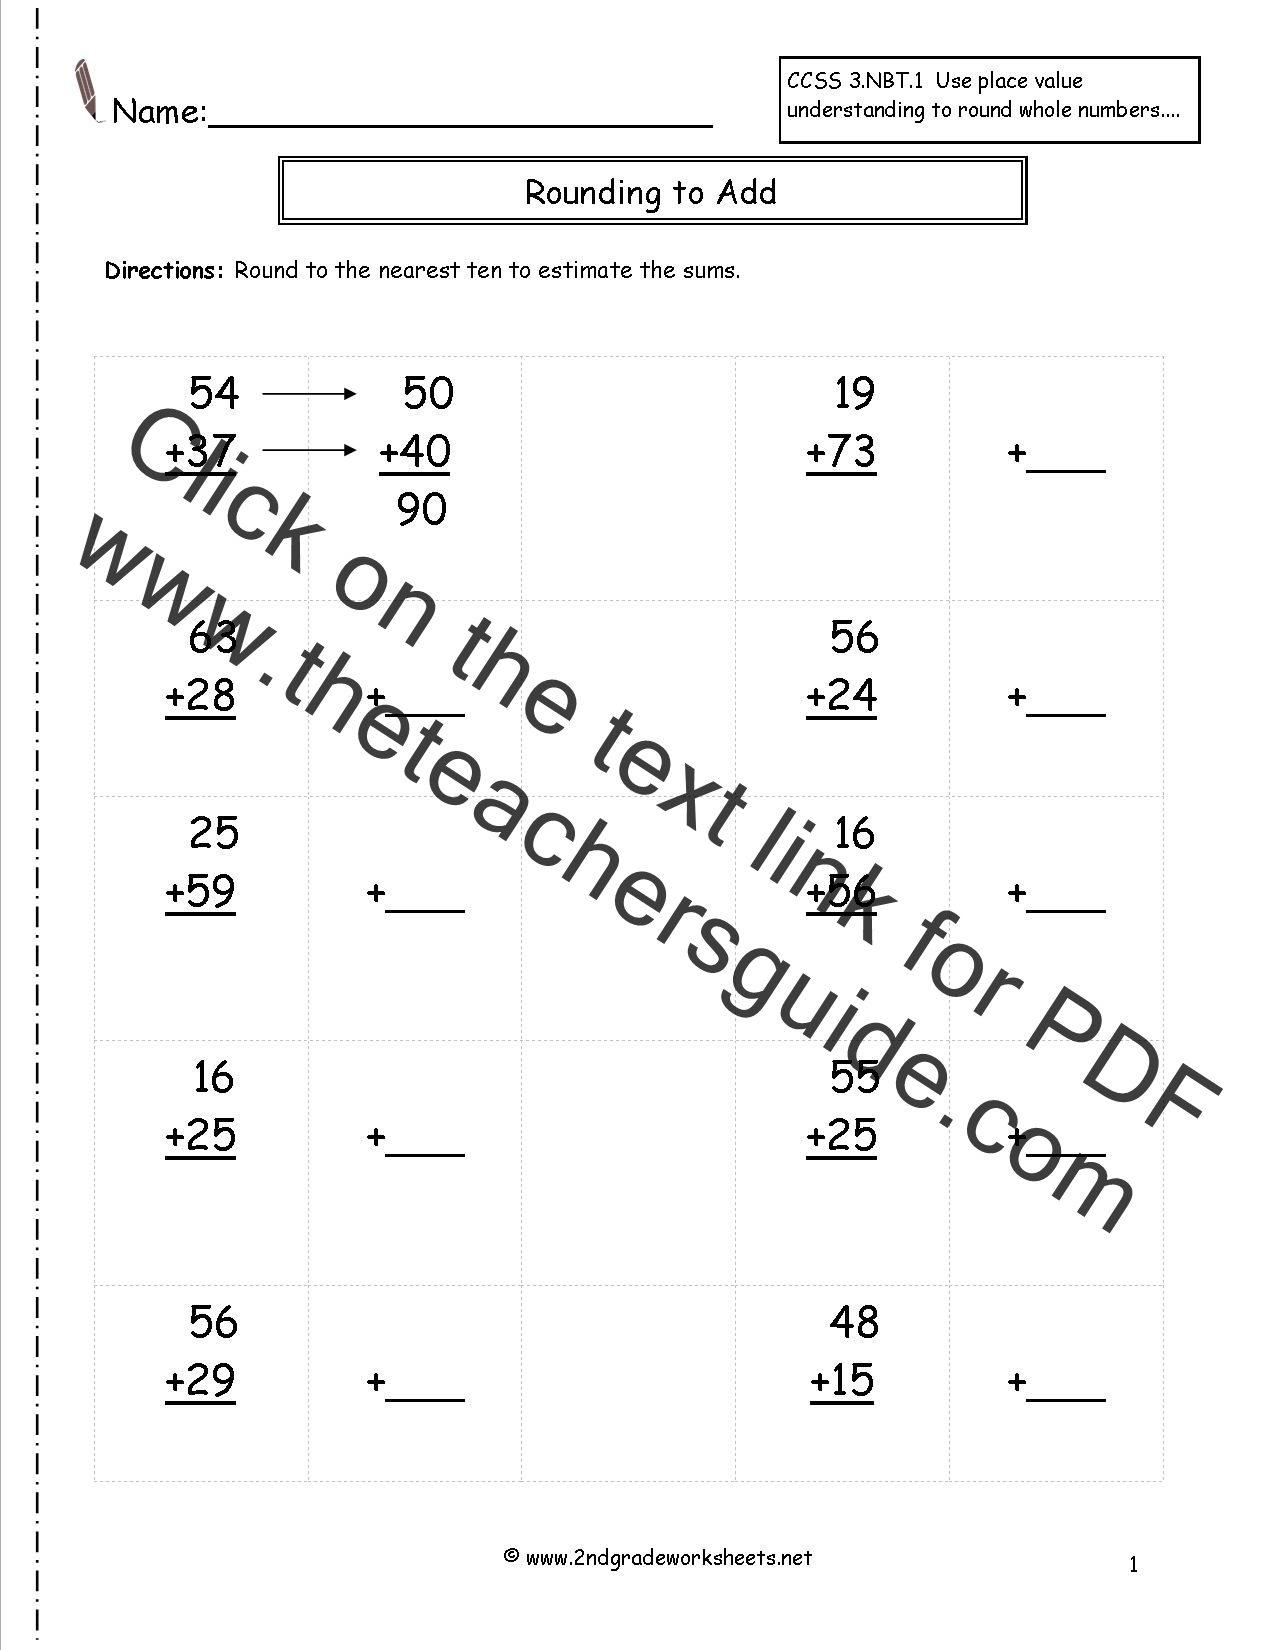 worksheet Rounding Numbers To The Nearest Ten Worksheets rounding whole numbers worksheets to estimate the sums 2 3